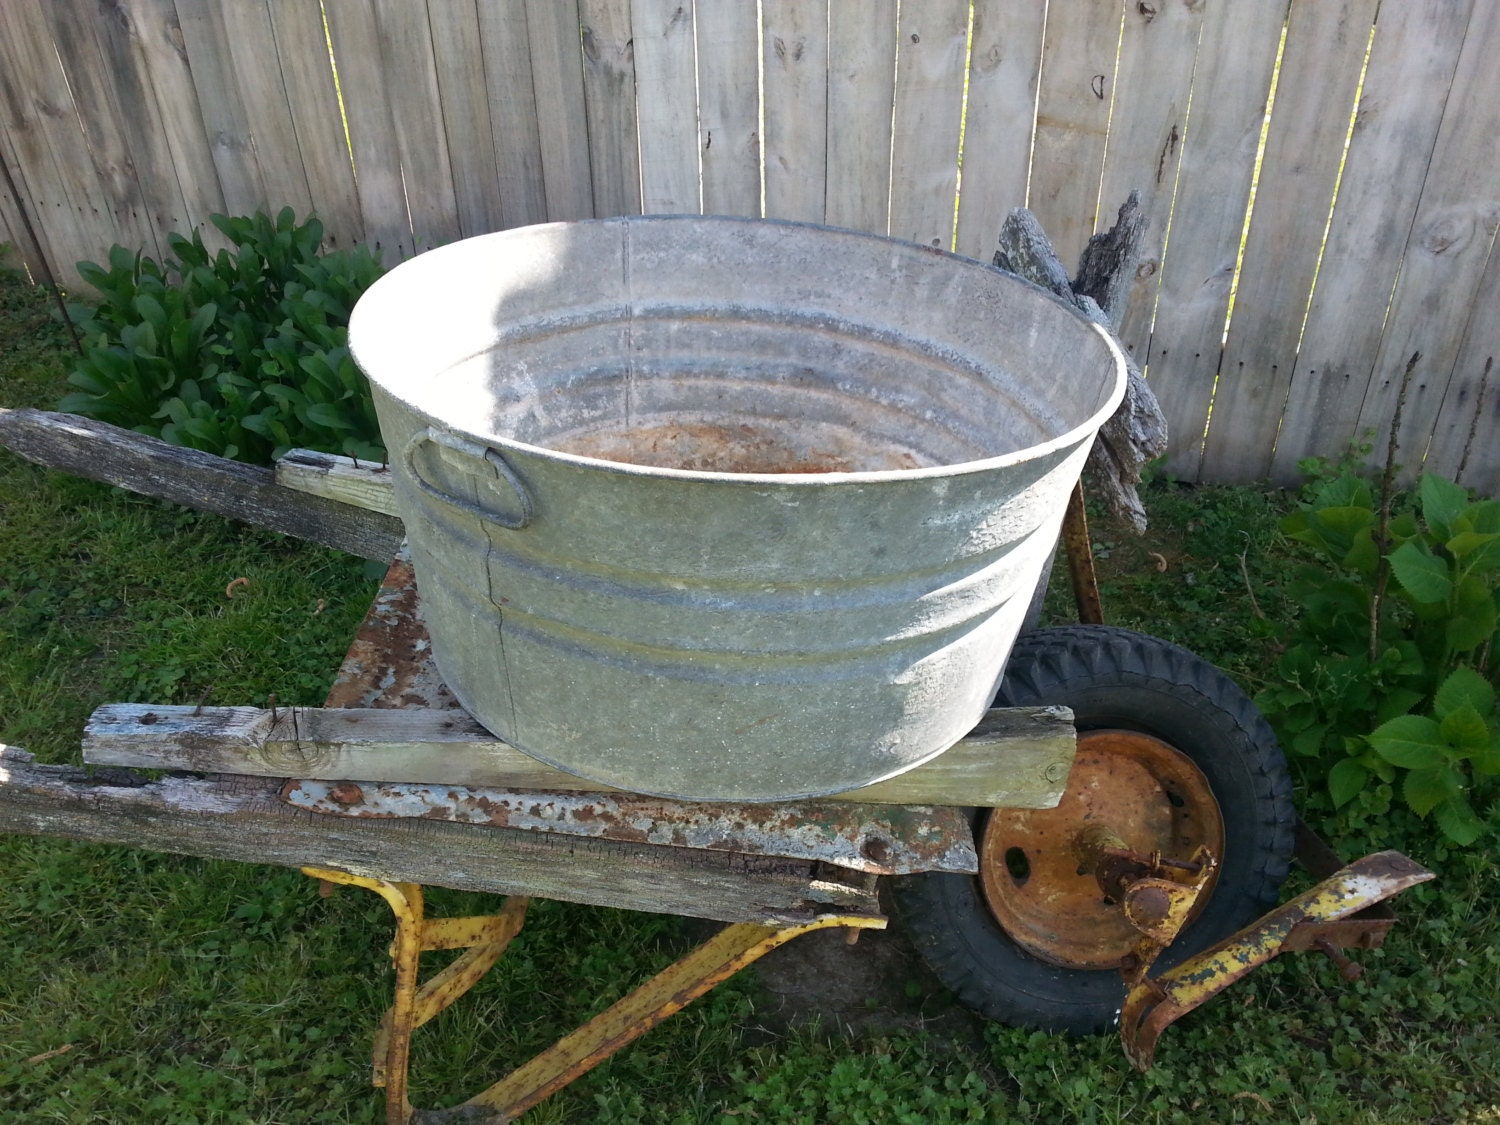 Round Galvanized Metal Wash Tub Bucket Vintage Rustic